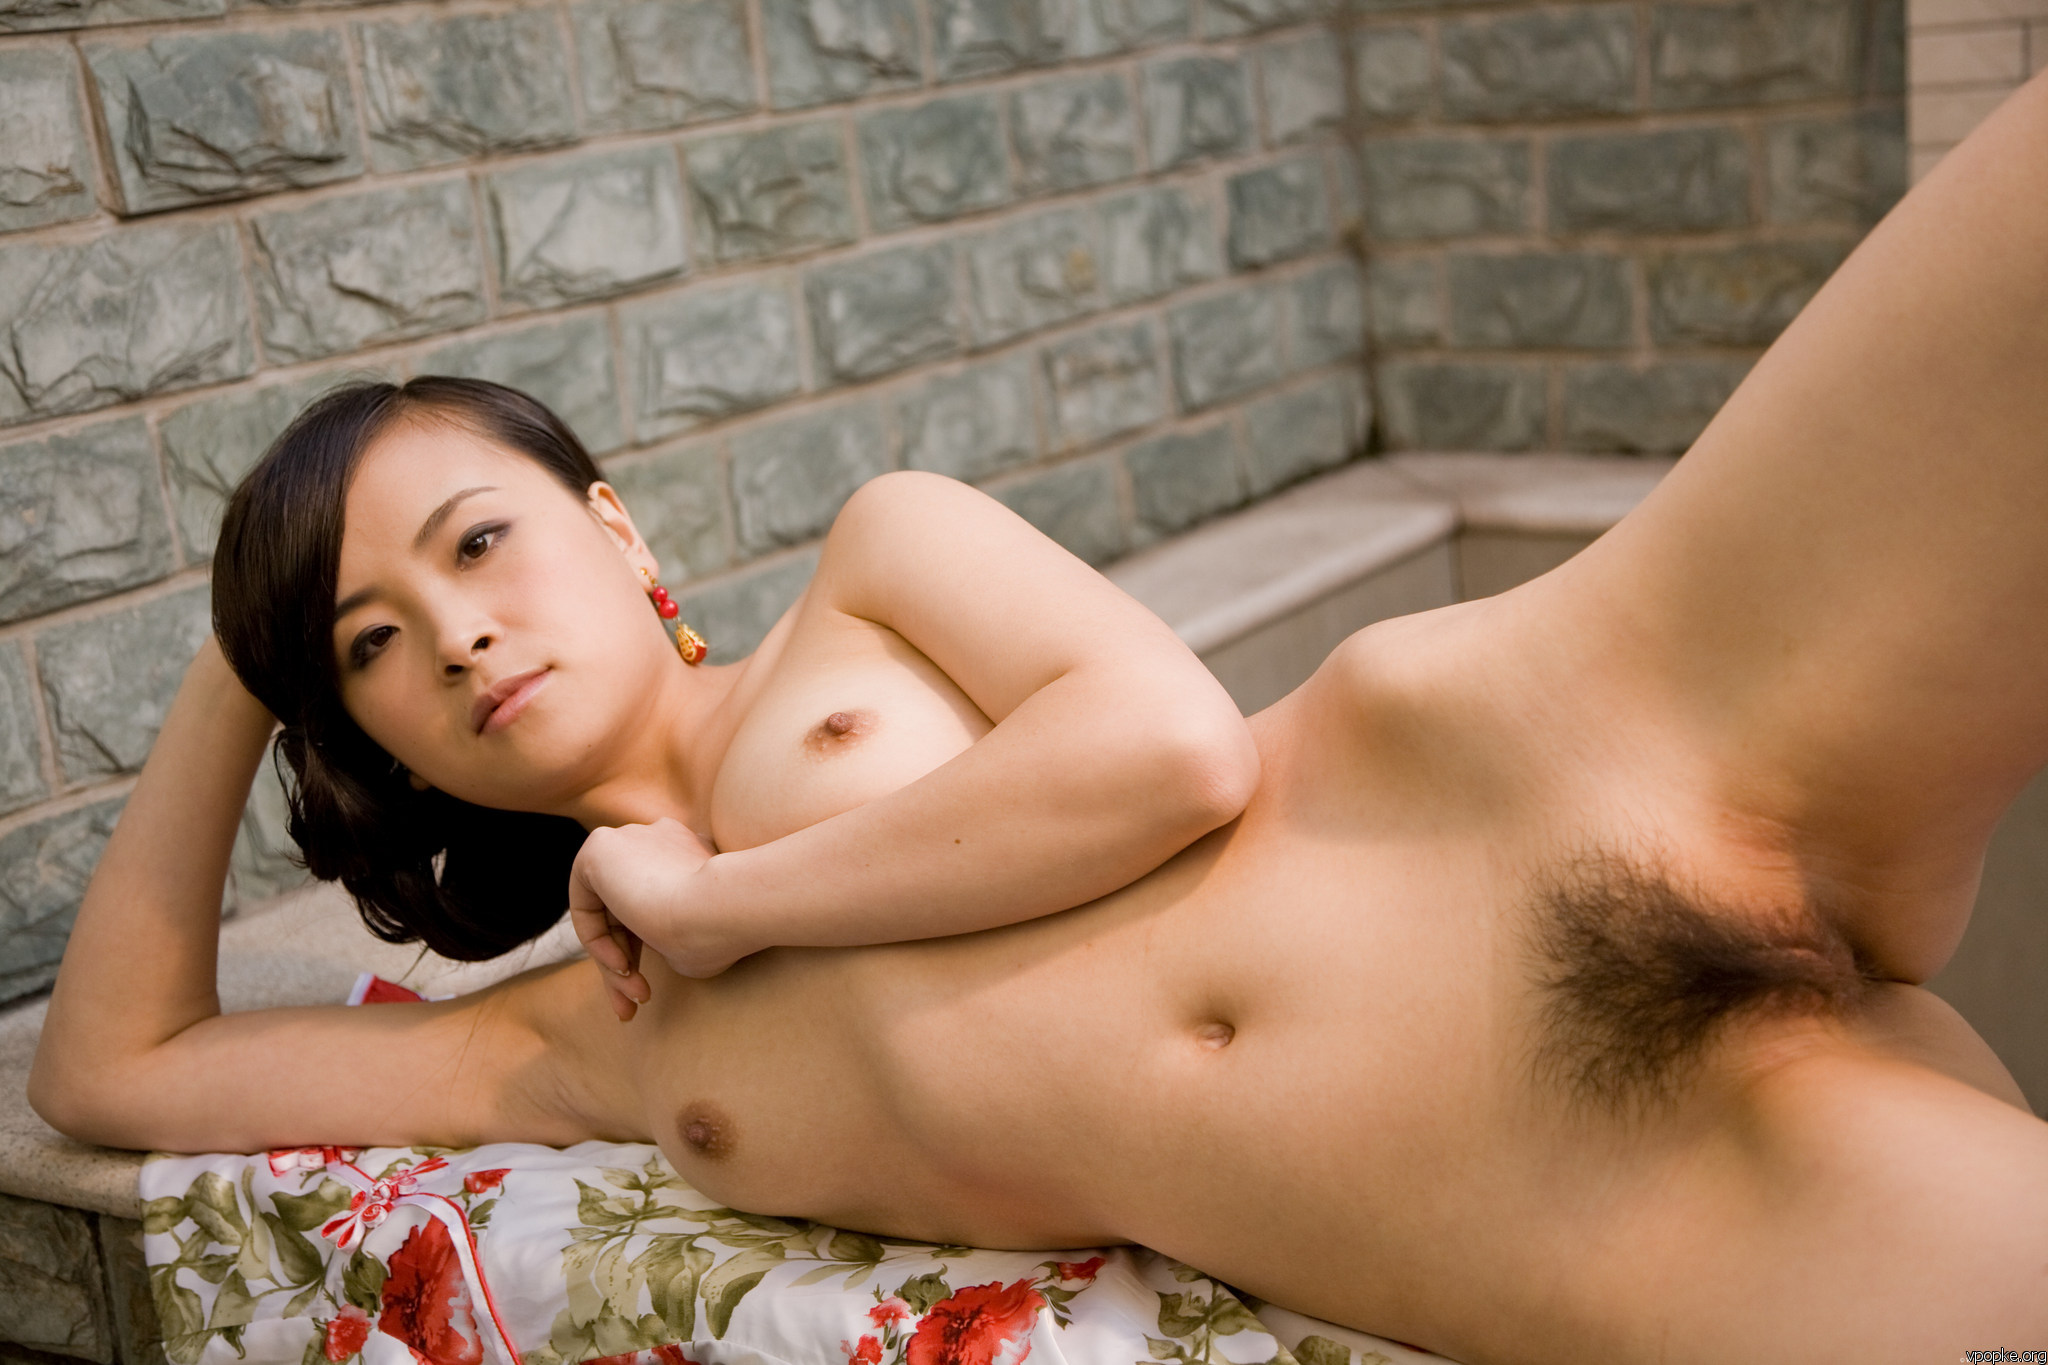 Mongolian nude art pict sexy toons